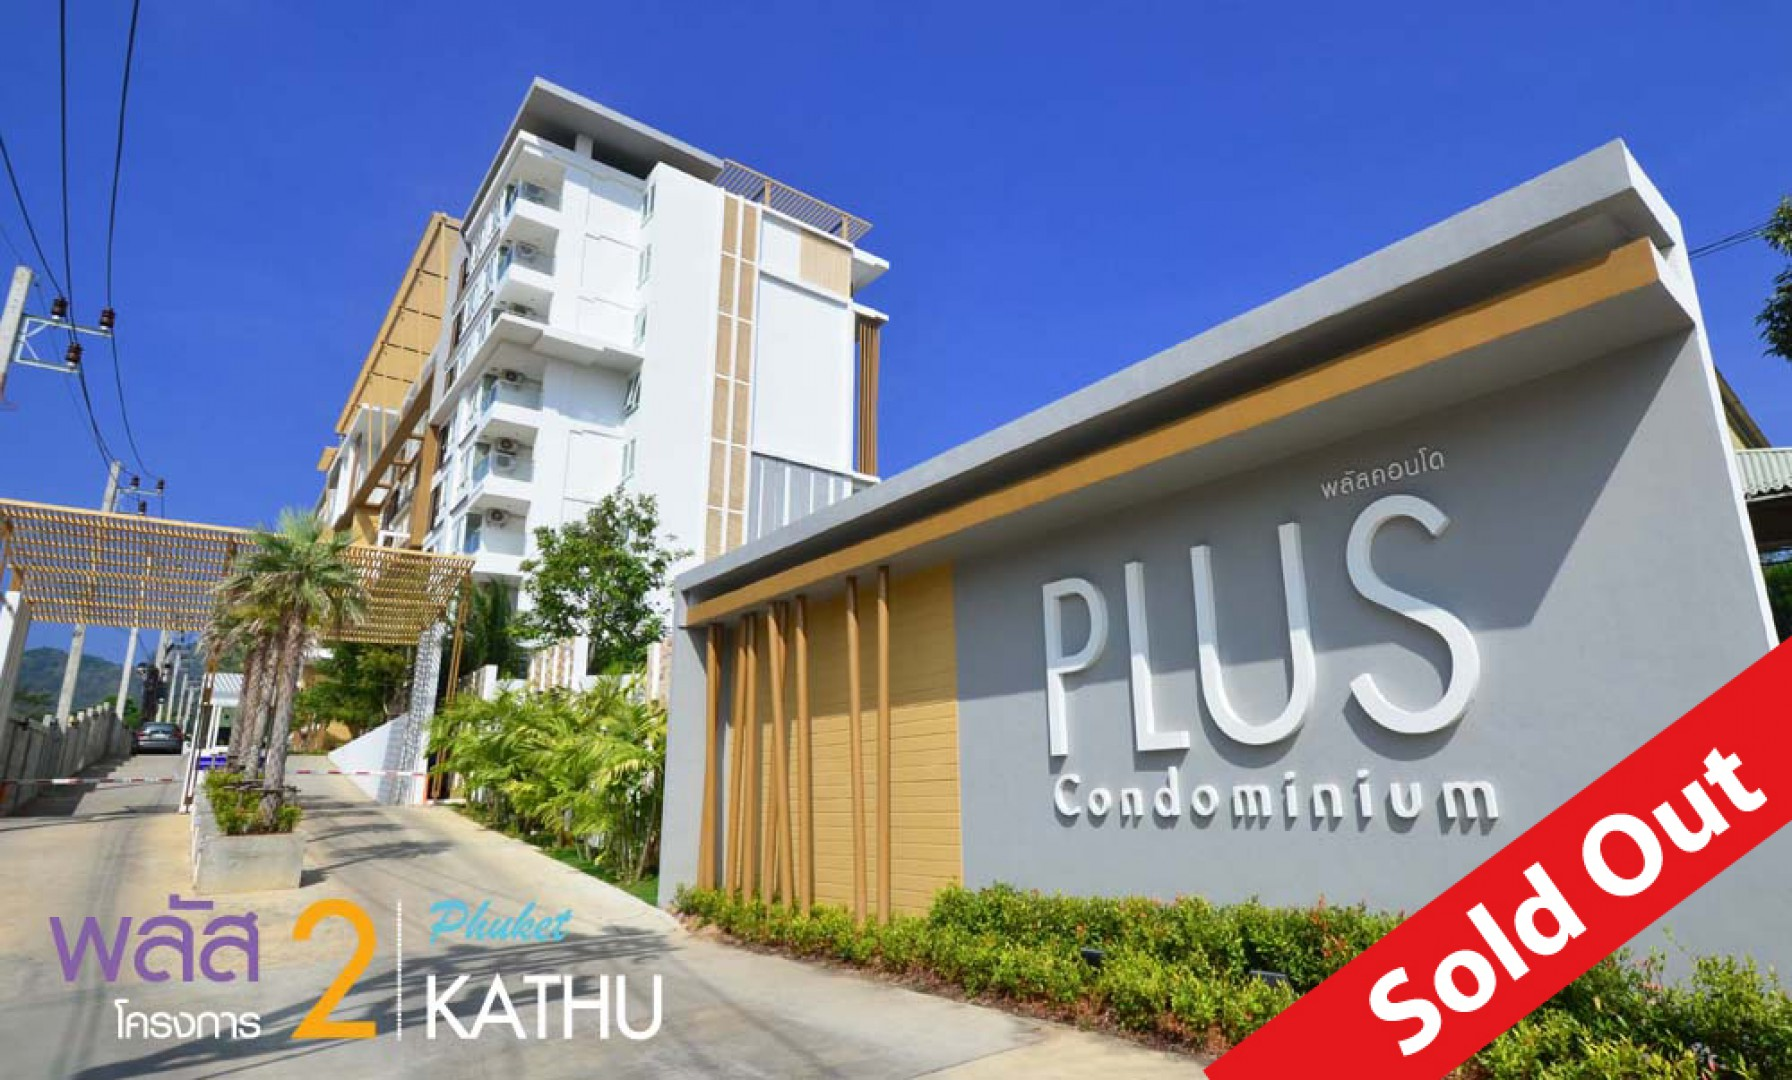 Plus Condominium Phuket 2